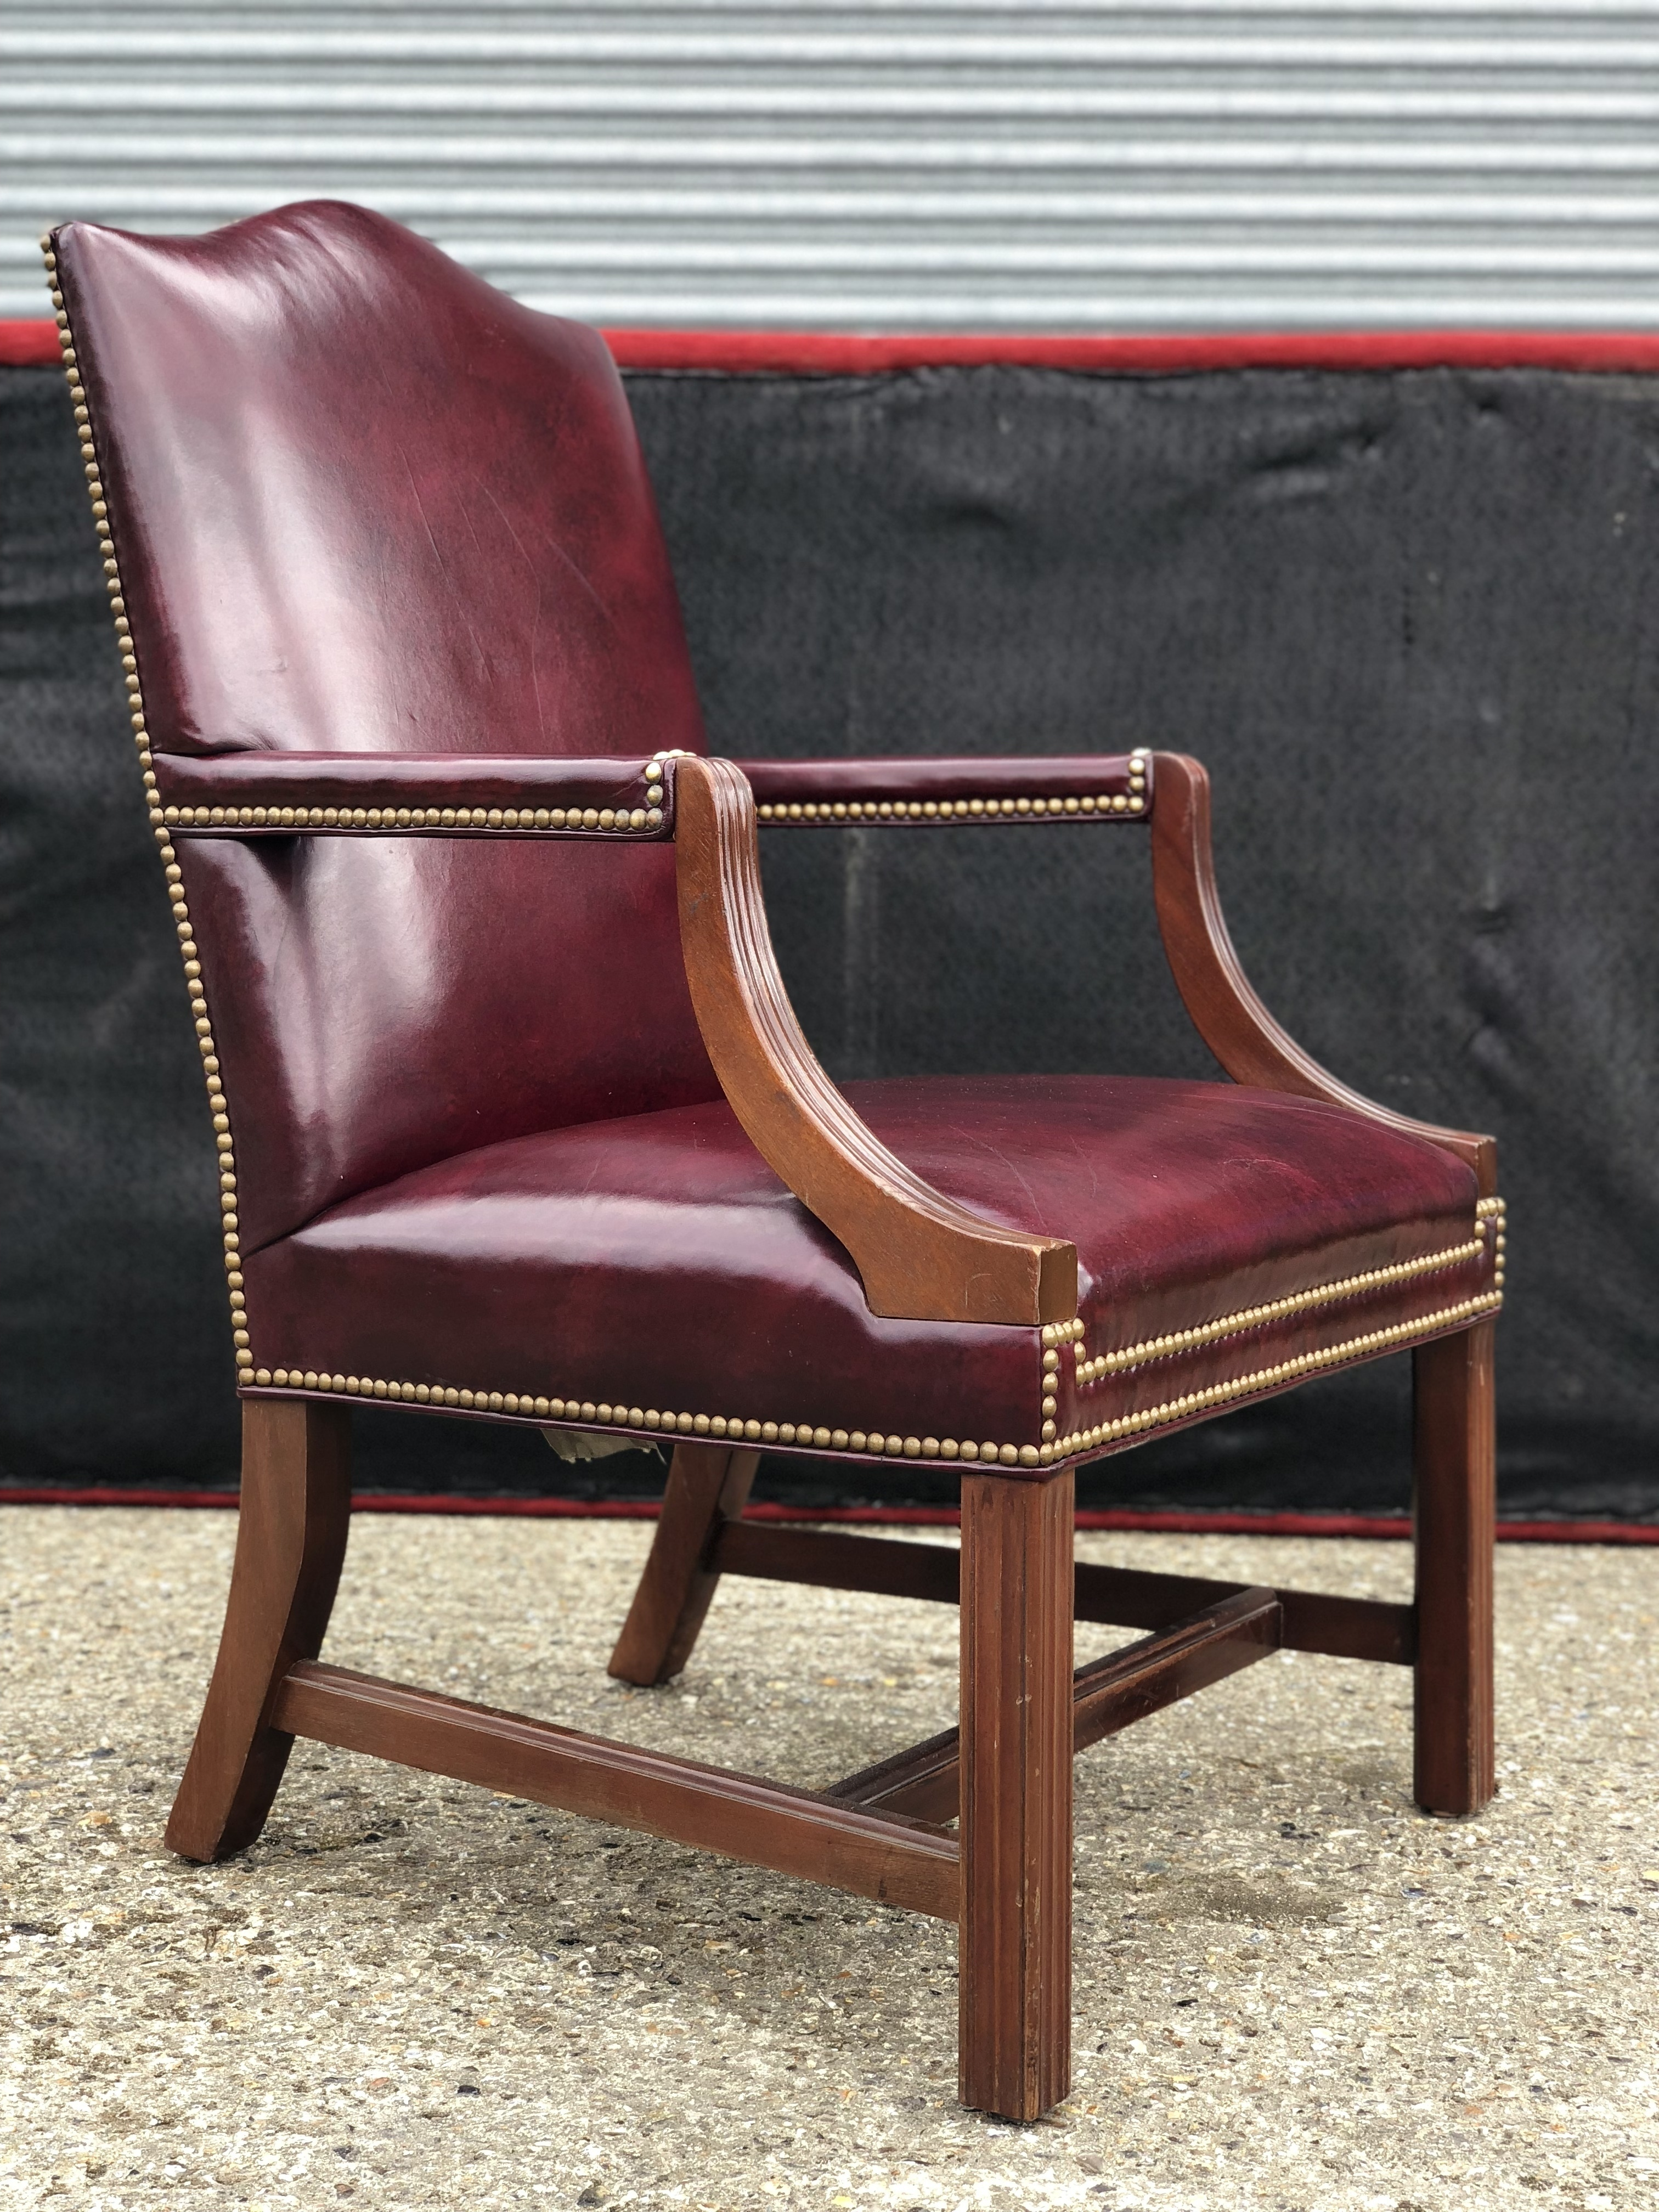 Incredible Hancock Moore Jefferson Side Chair Gmtry Best Dining Table And Chair Ideas Images Gmtryco